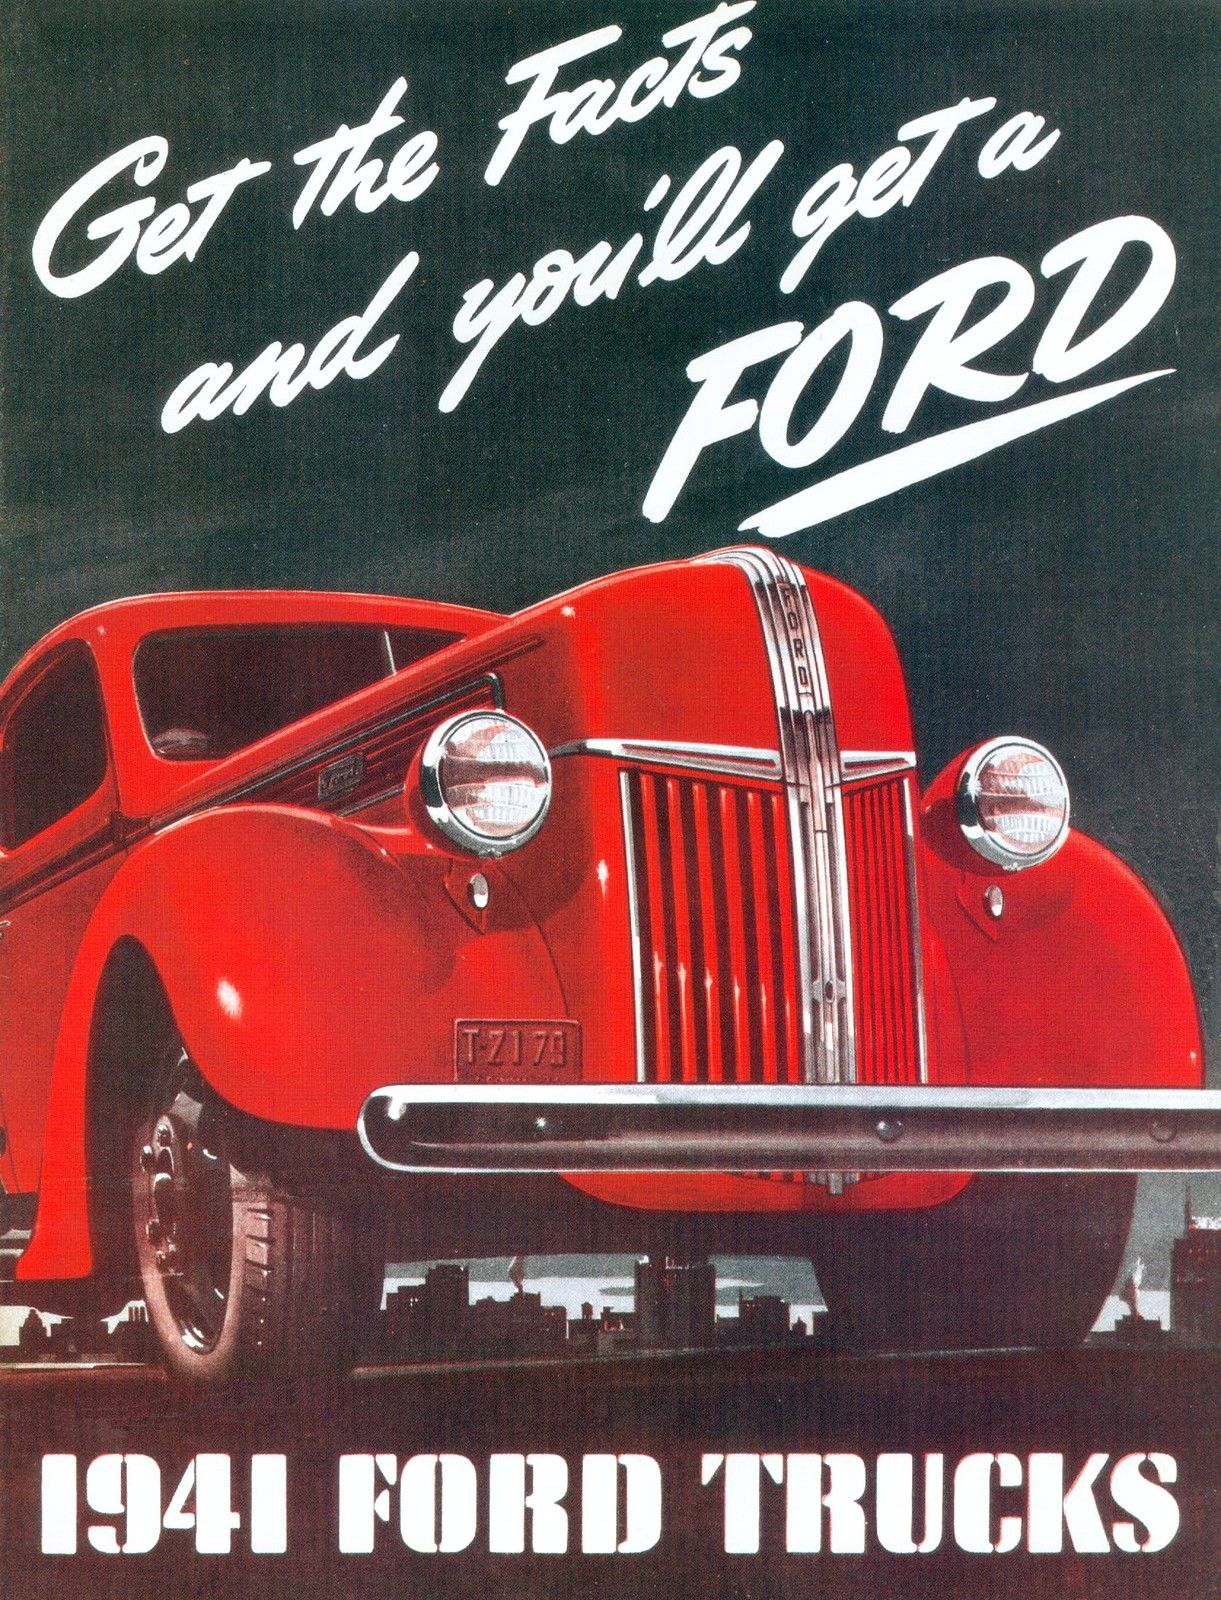 Transpress Nz 1941 Ford Trucks Ad Coupe Red